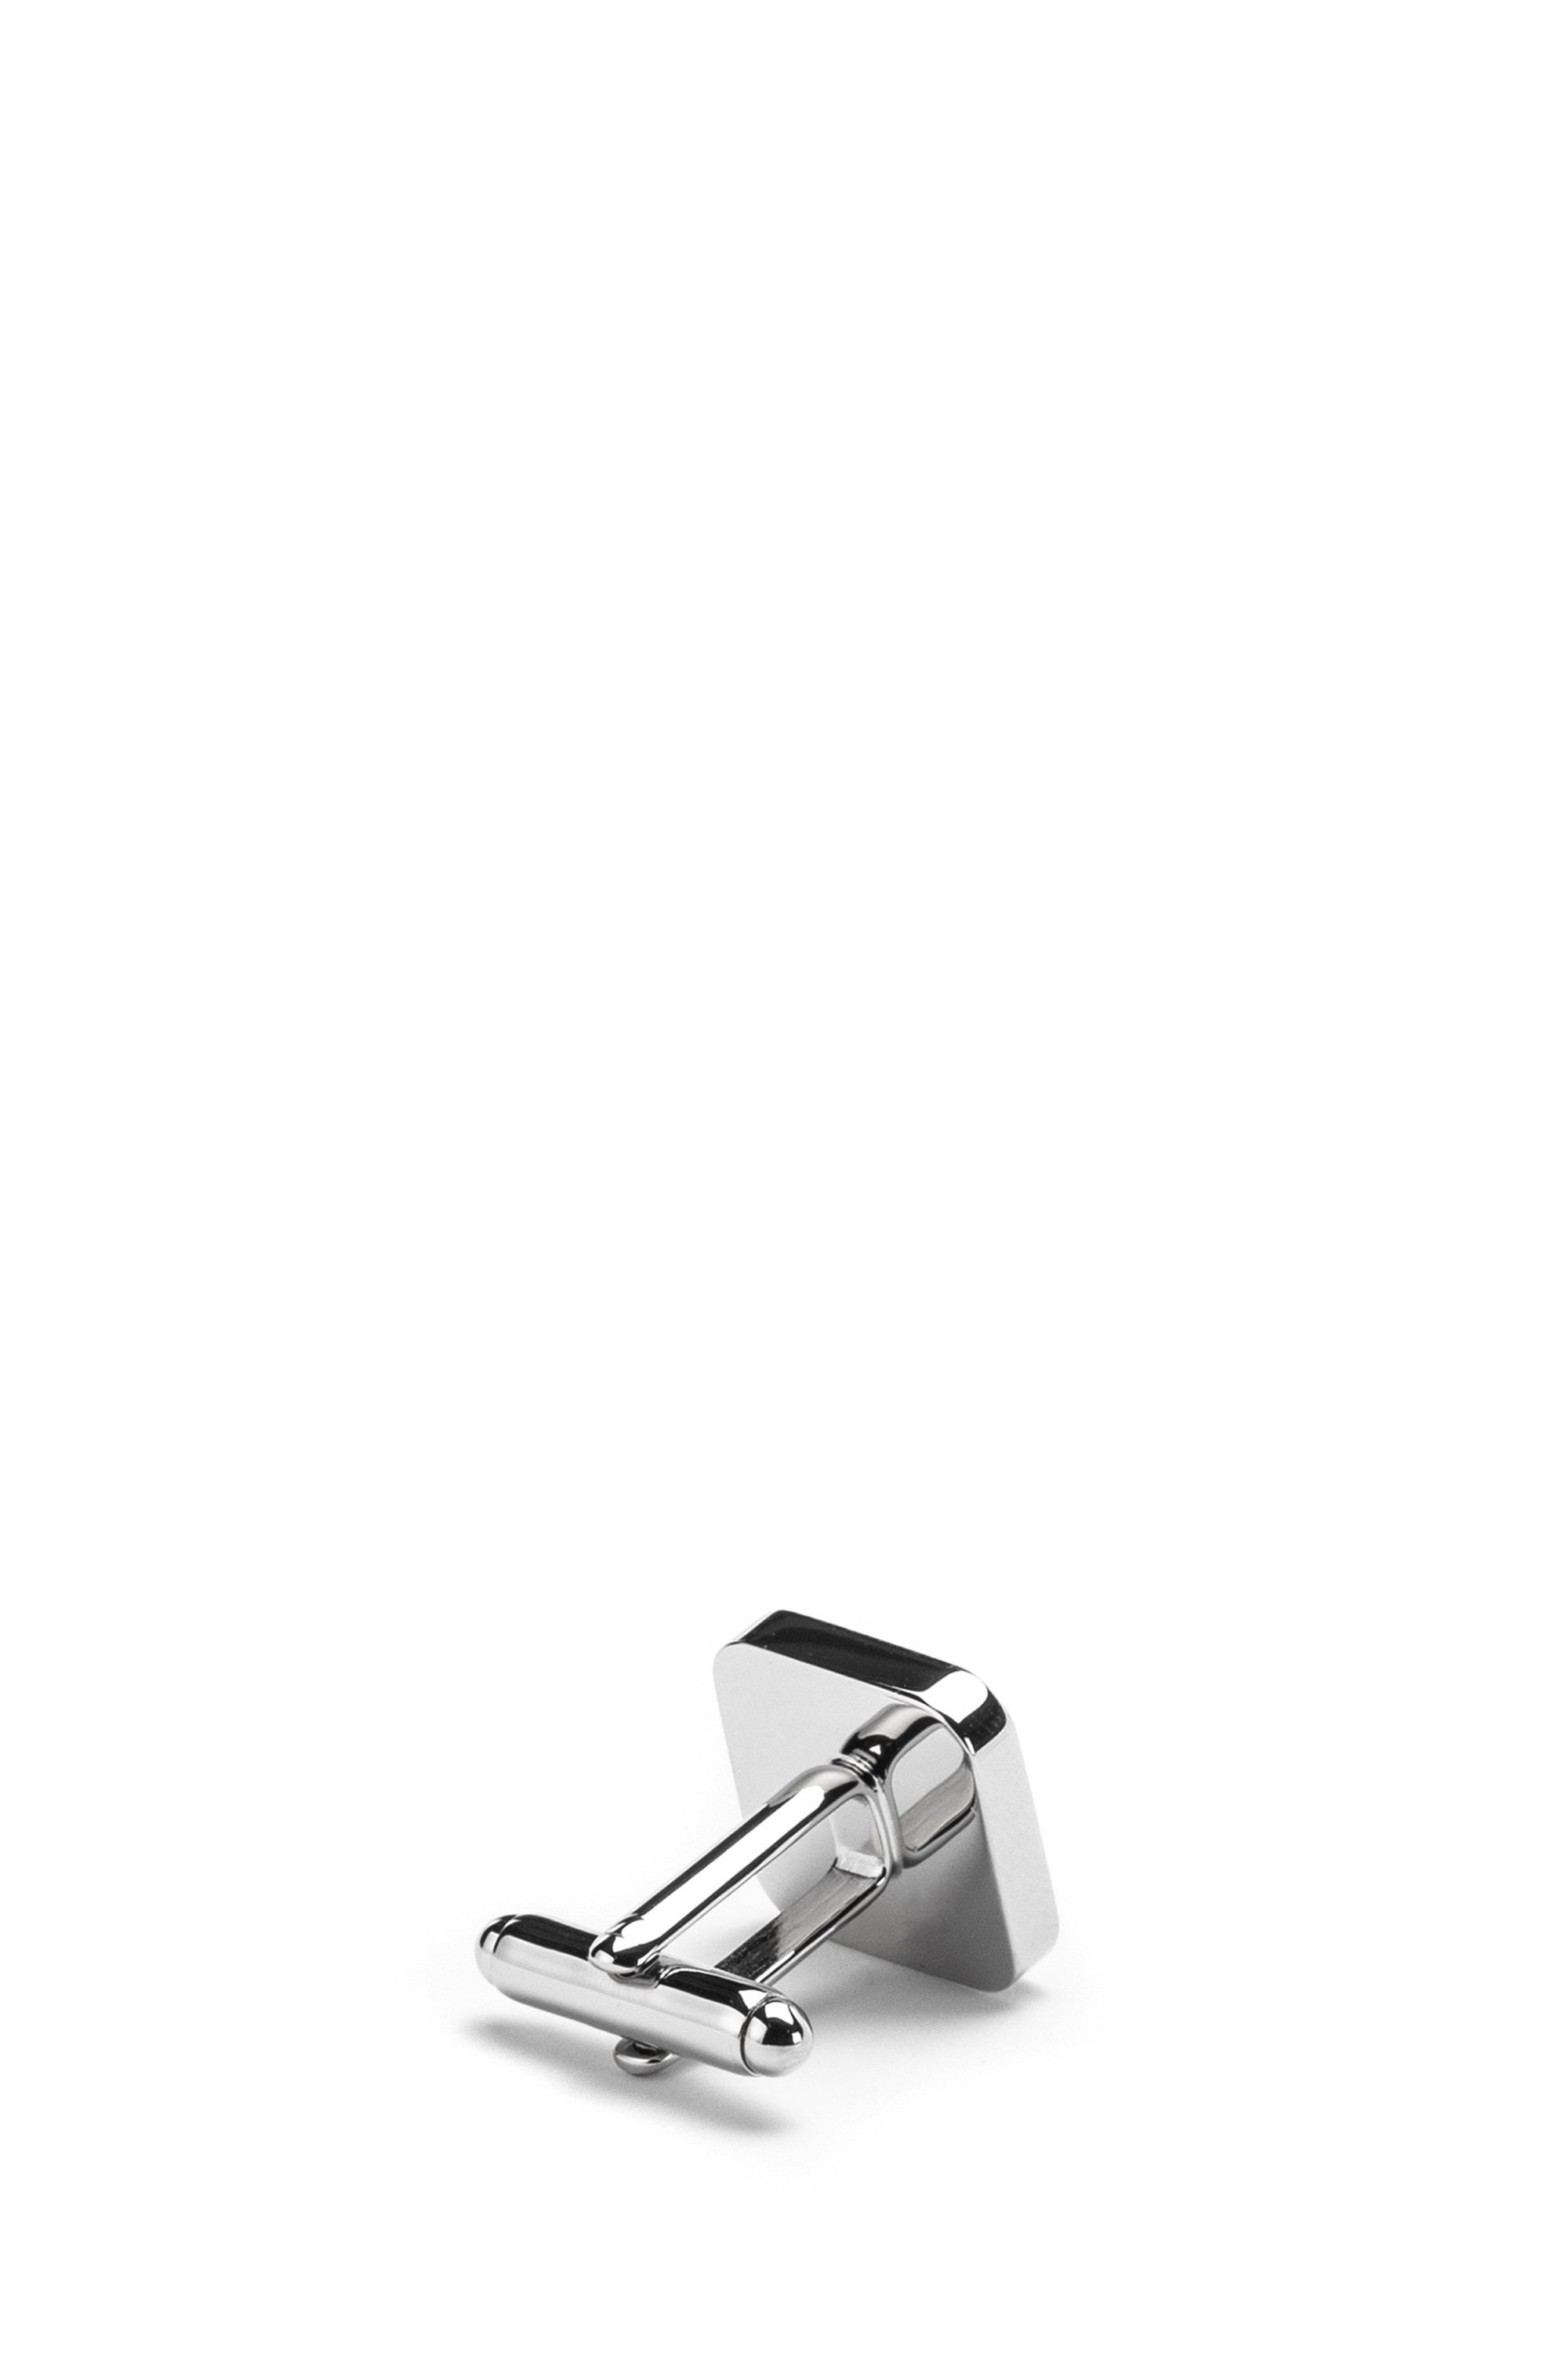 Square cufflinks with mother-of-pearl insert